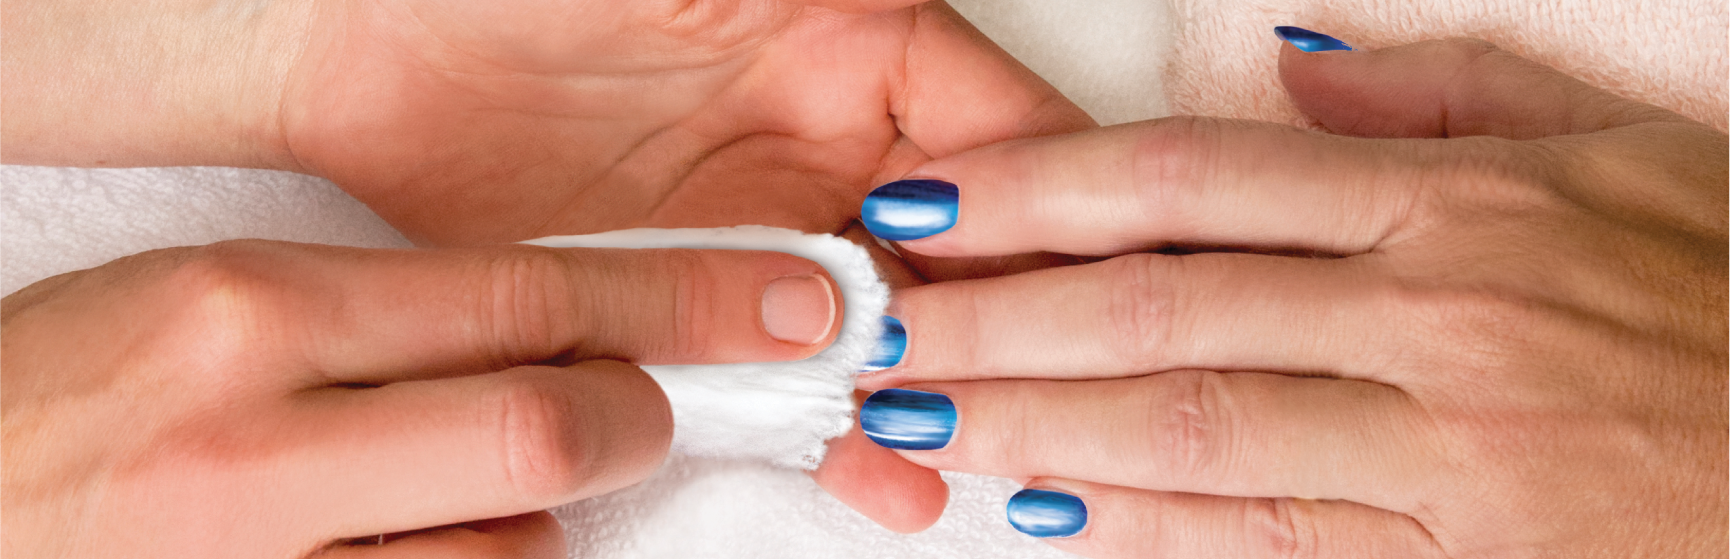 Use Cotton Coil for Nails